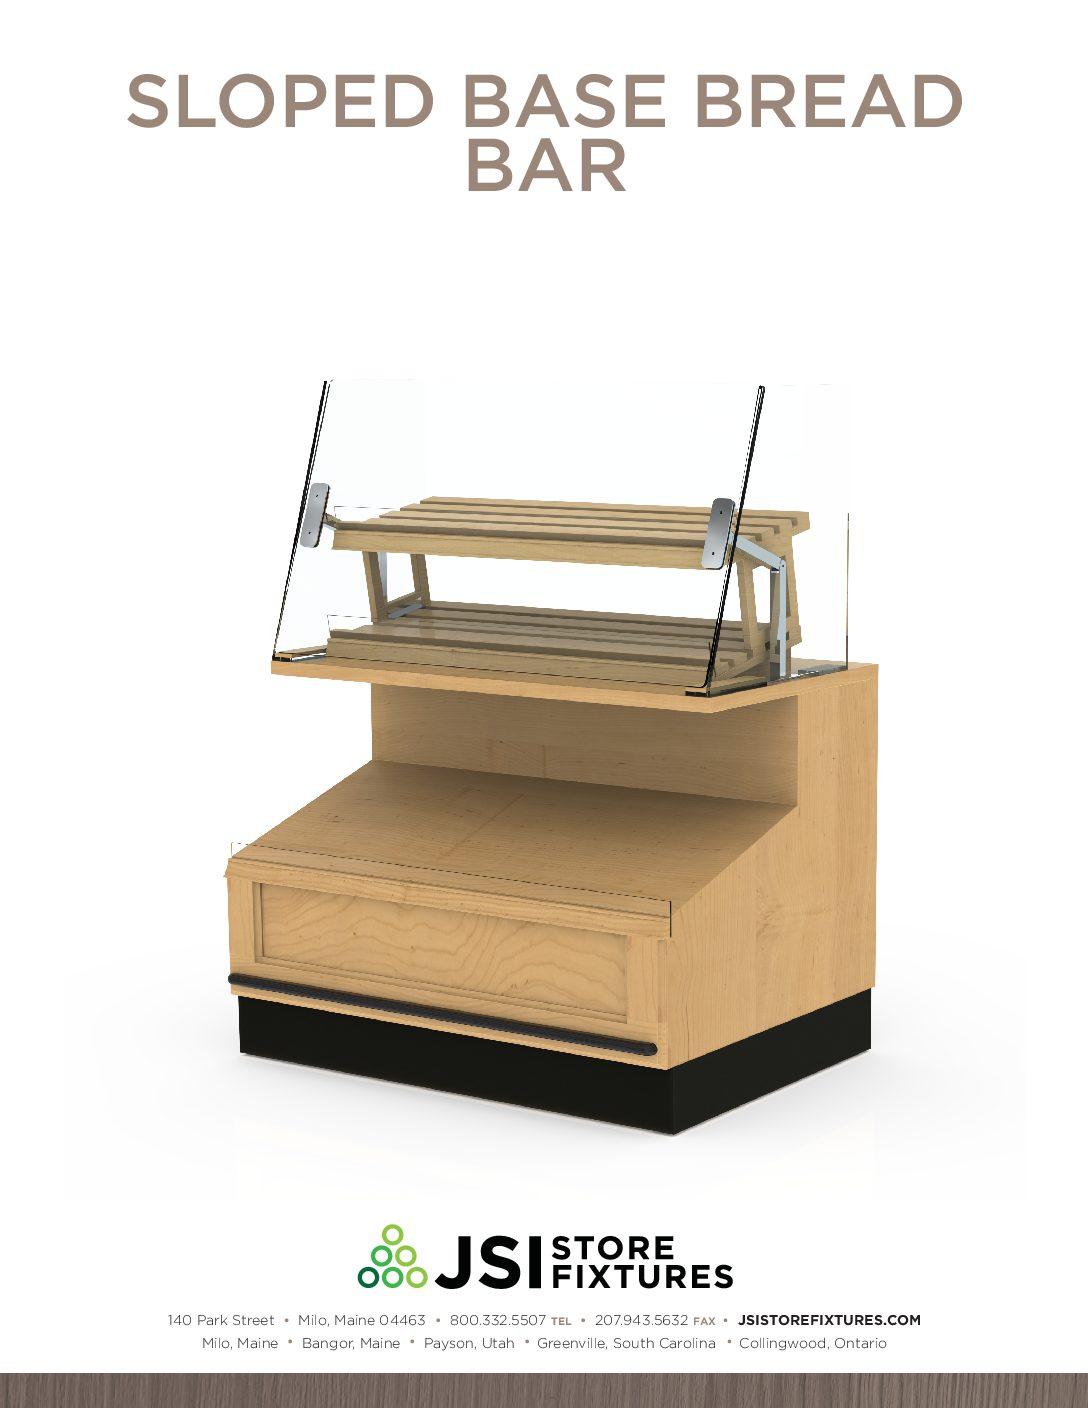 Sloped Base Bread Bar Spec Sheet